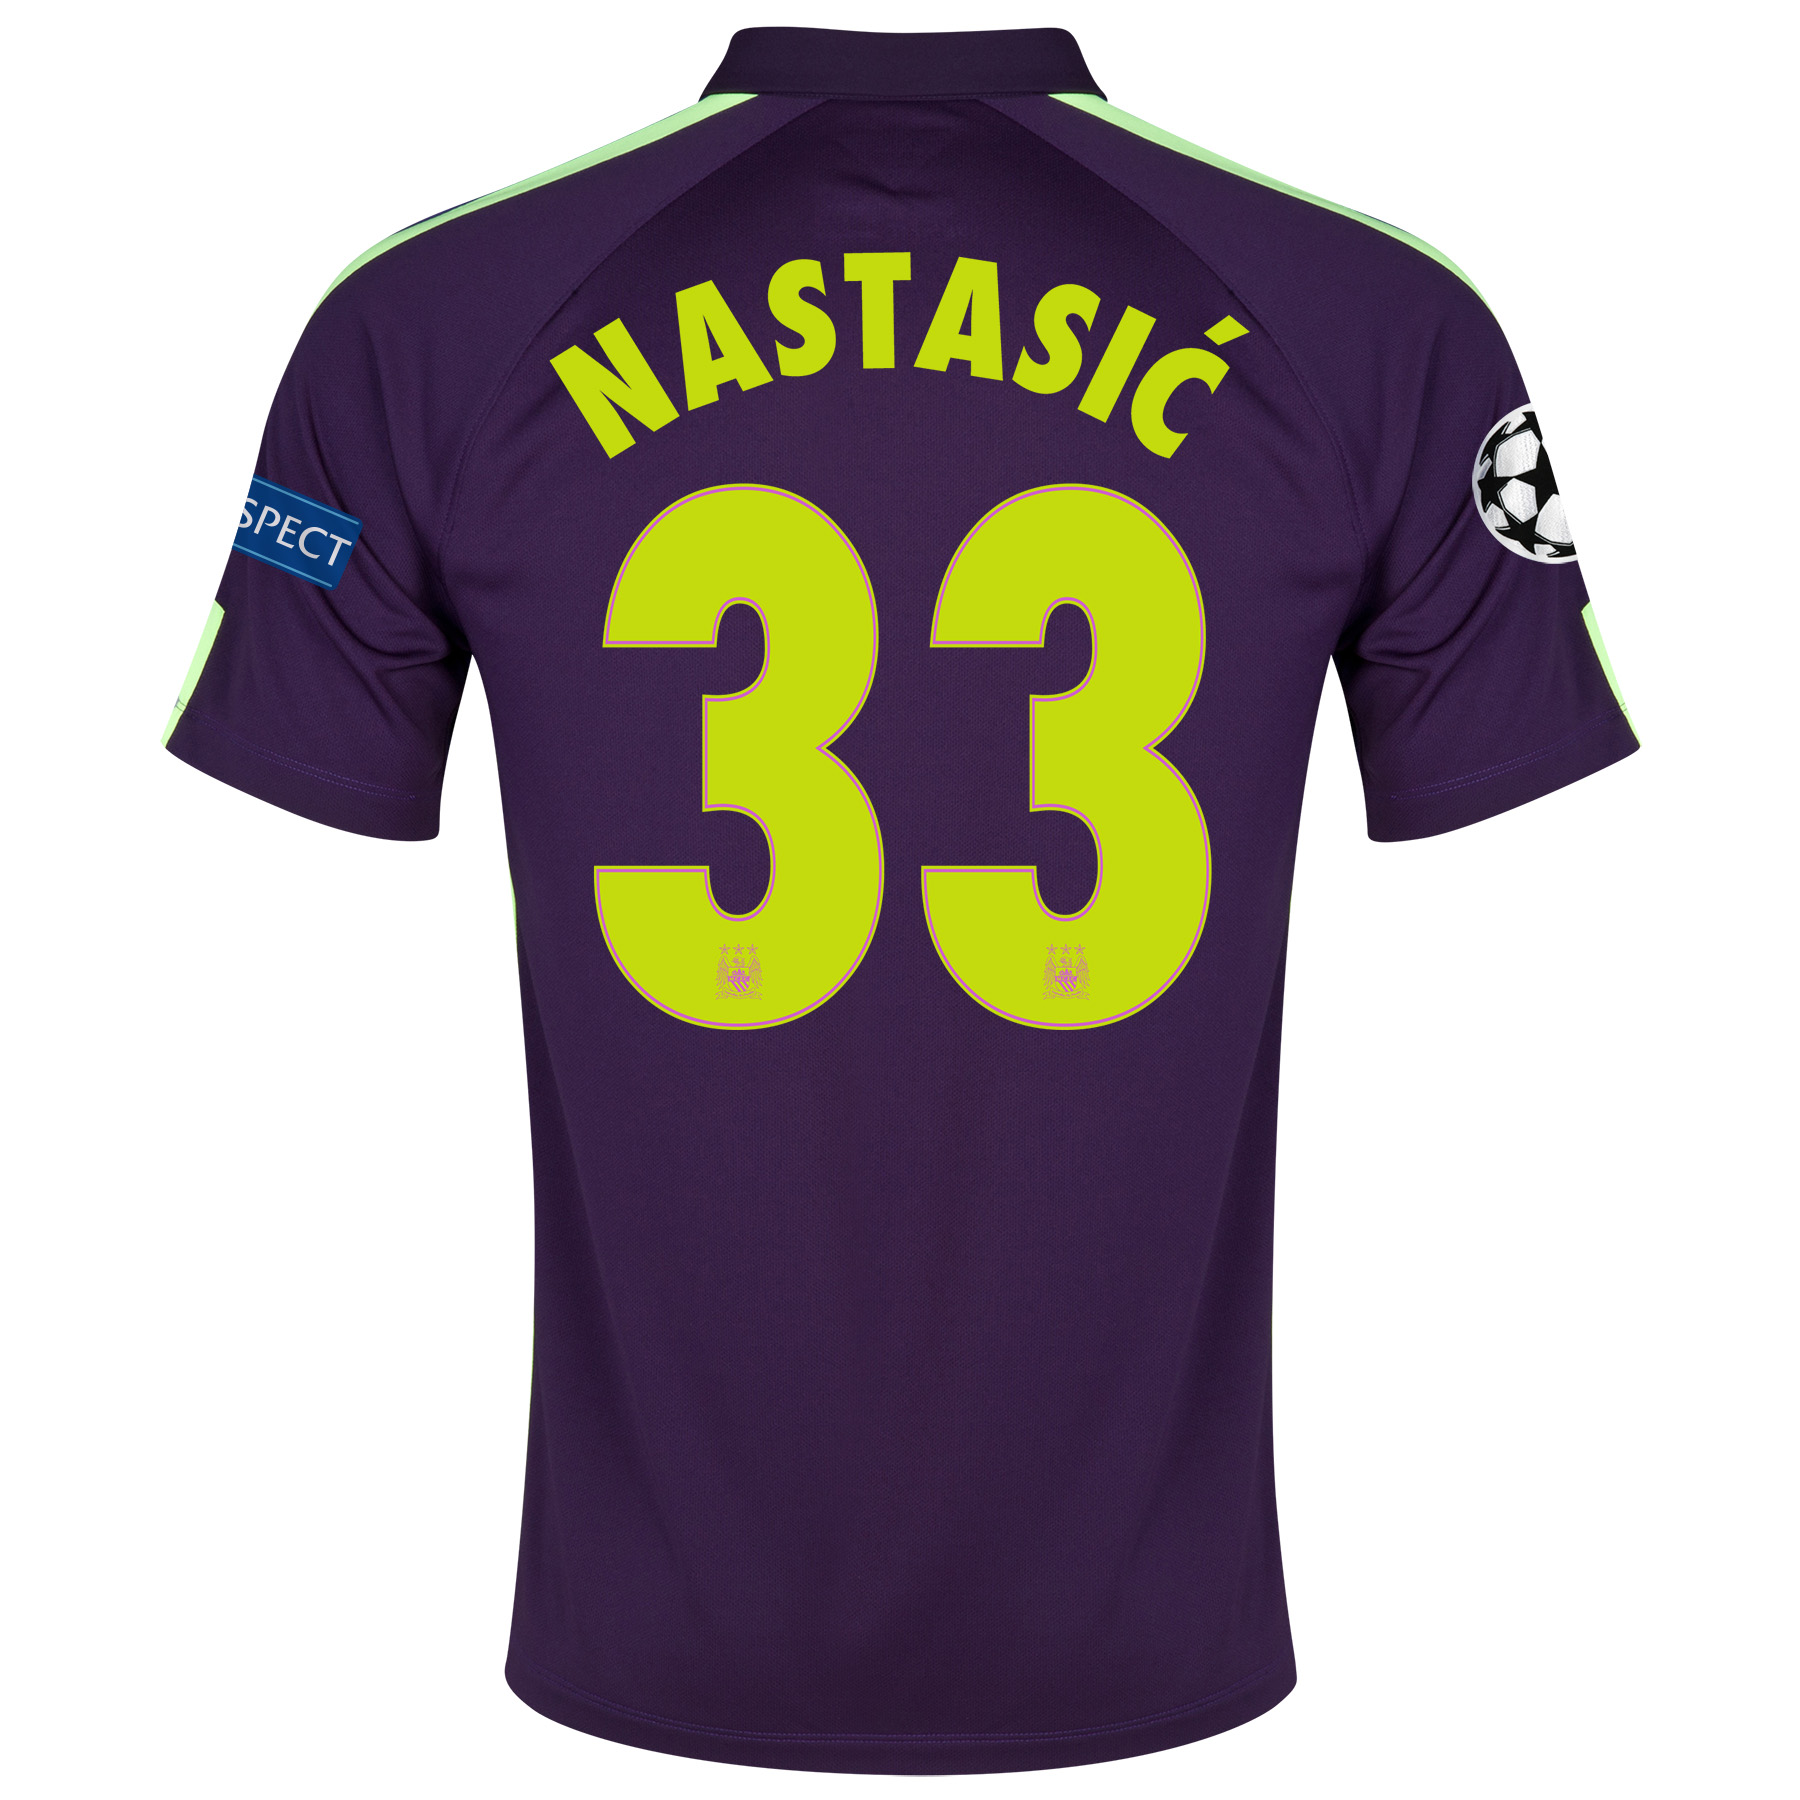 Manchester City UEFA Champions League Cup Away Shirt 2014/15 Purple with Nastasic 33 printing